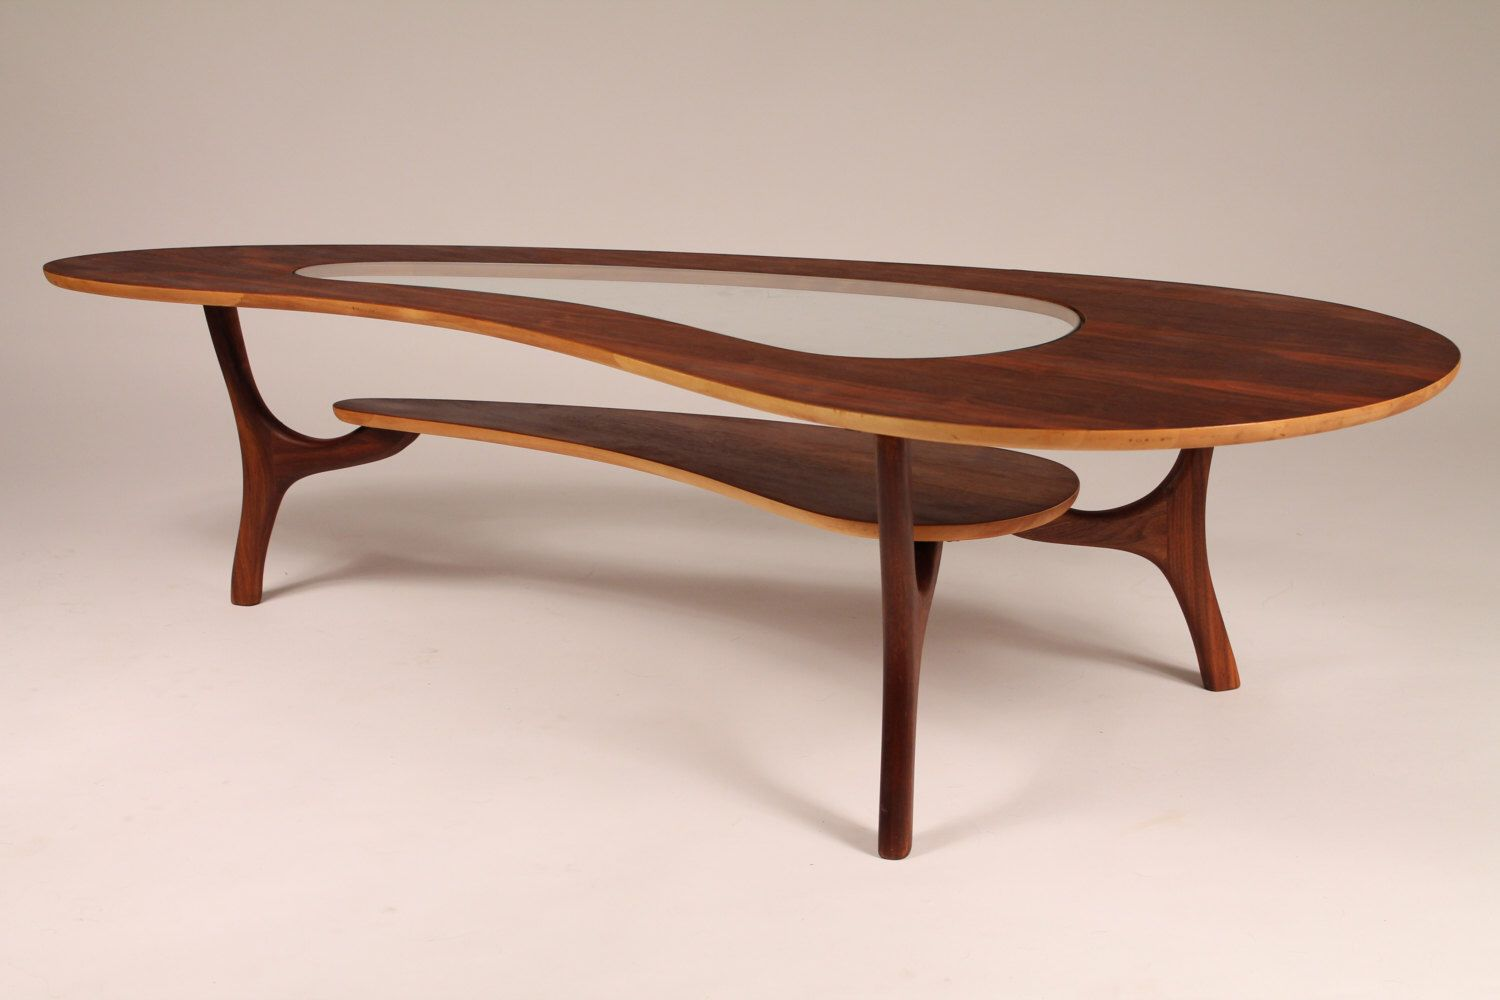 1960 WALNUT COFFEE TABLE veneer kidney shaped with center glass